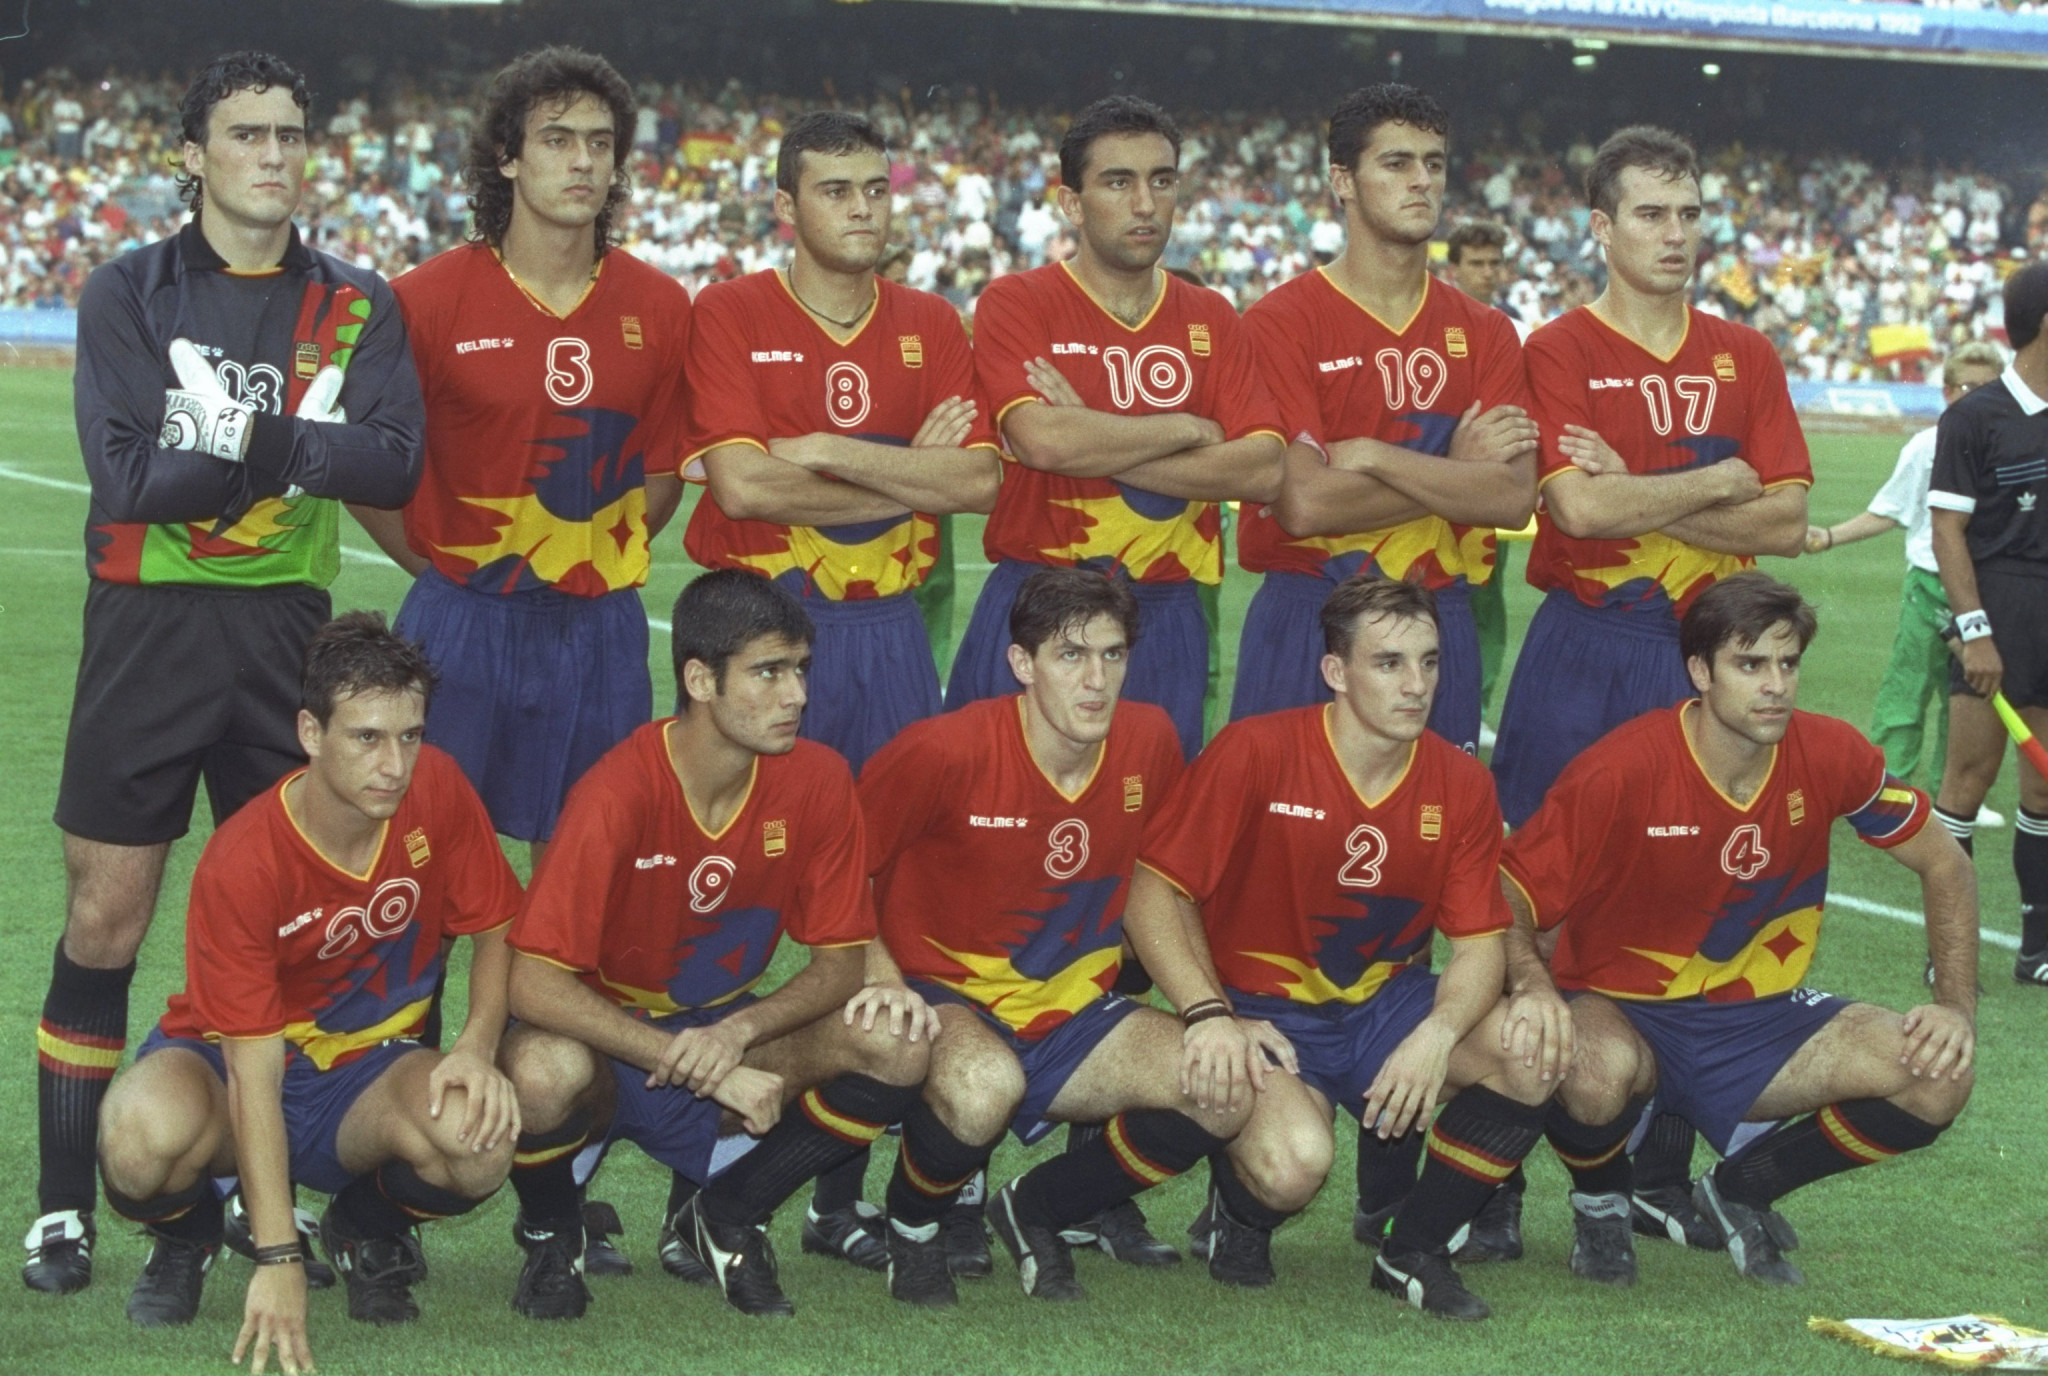 Spain went one better at Barcelona 1992, winning men's Olympic football gold as hosts ©Getty Images